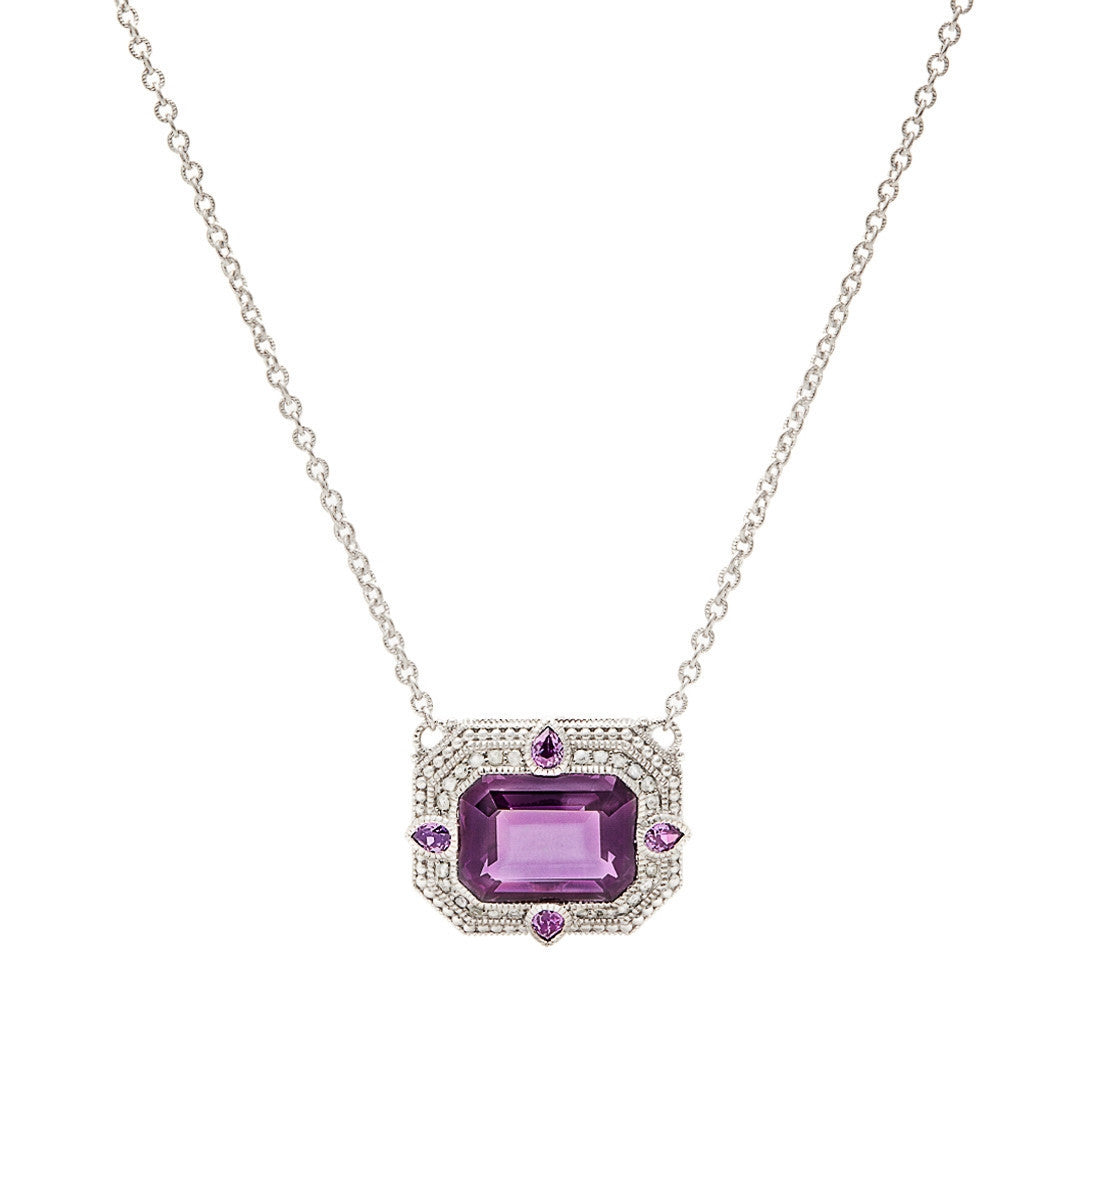 Aria Purple Crystal East West Pendant Necklace, , Necklace, judith ripka, D'Amore Jewelers  - 1